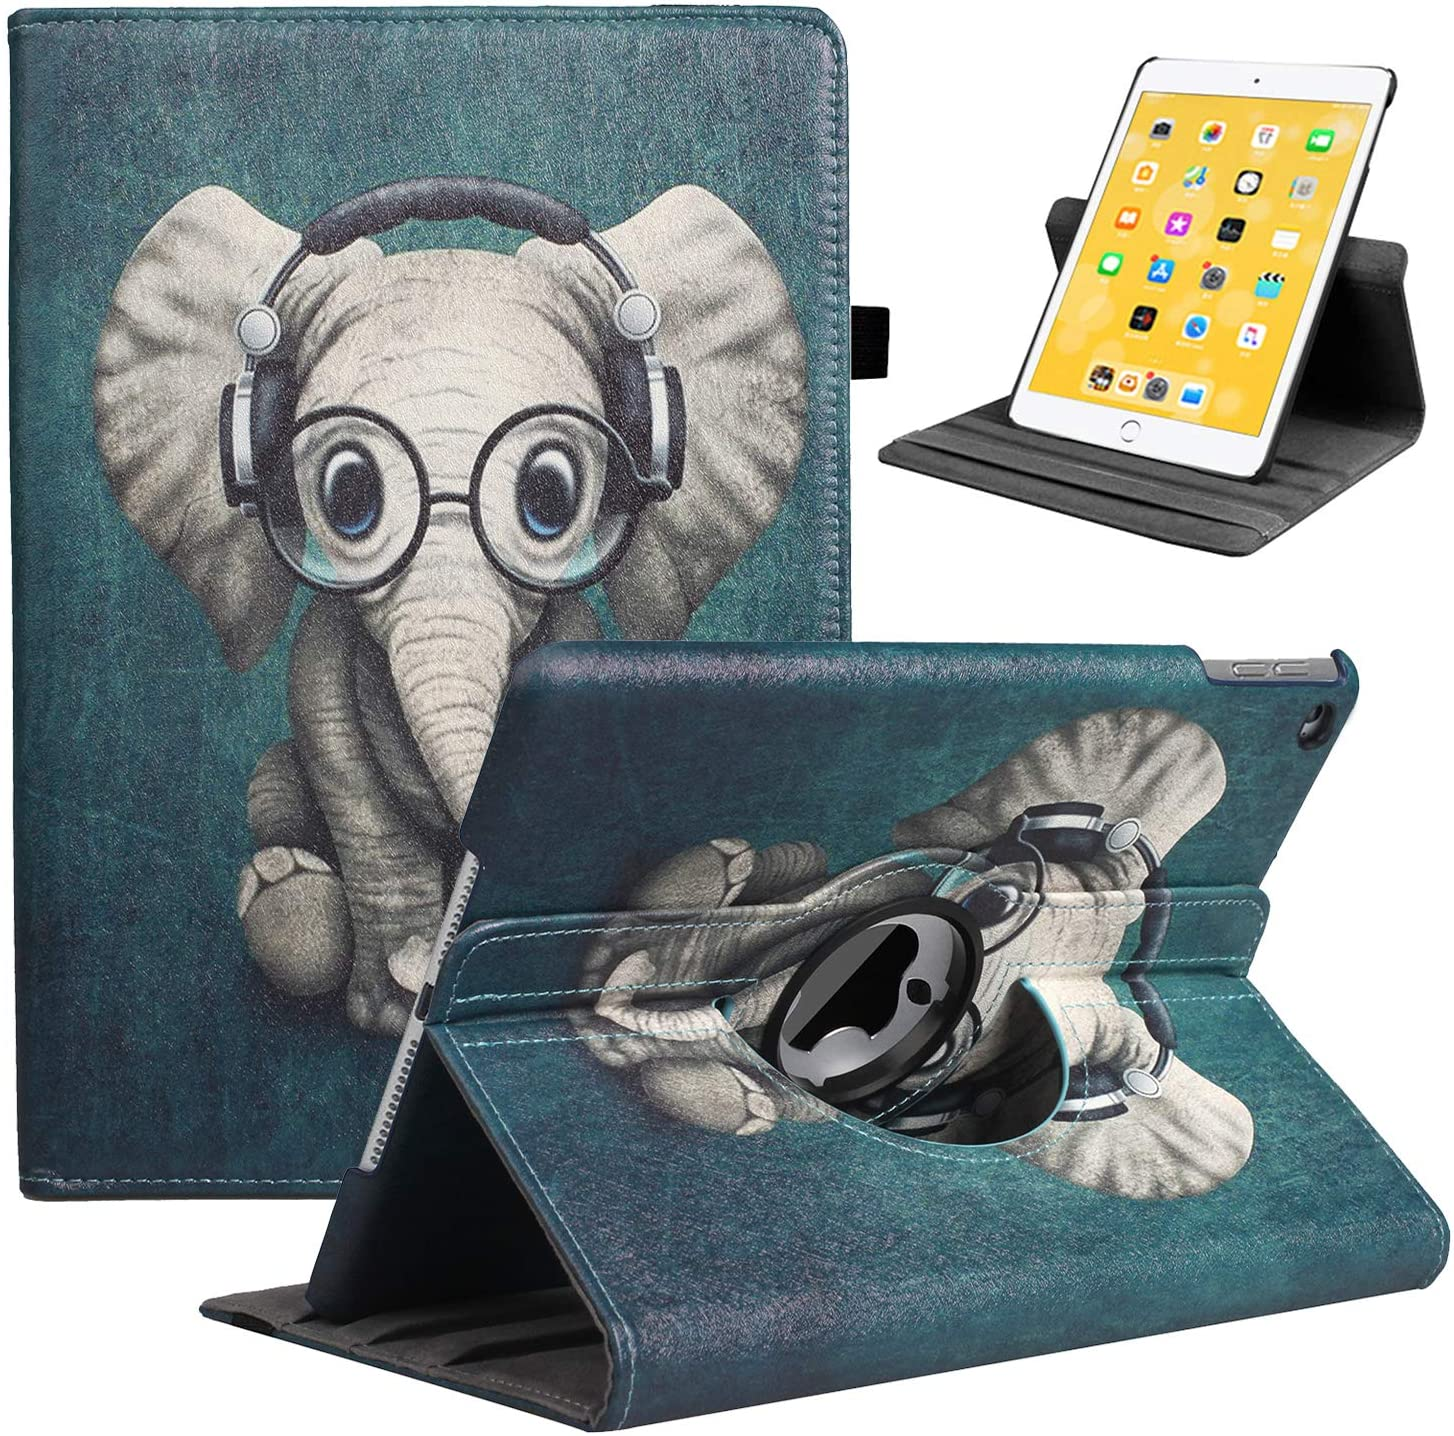 LRCXL iPad 5th/ 6th Generation Case, iPad 9.7 Inch 2017/2018 Case - Rotating Stand Protective Cover with Auto Sleep Wake for Apple ipad Air 2/ iPad Air 2013 (Musical Elephant)